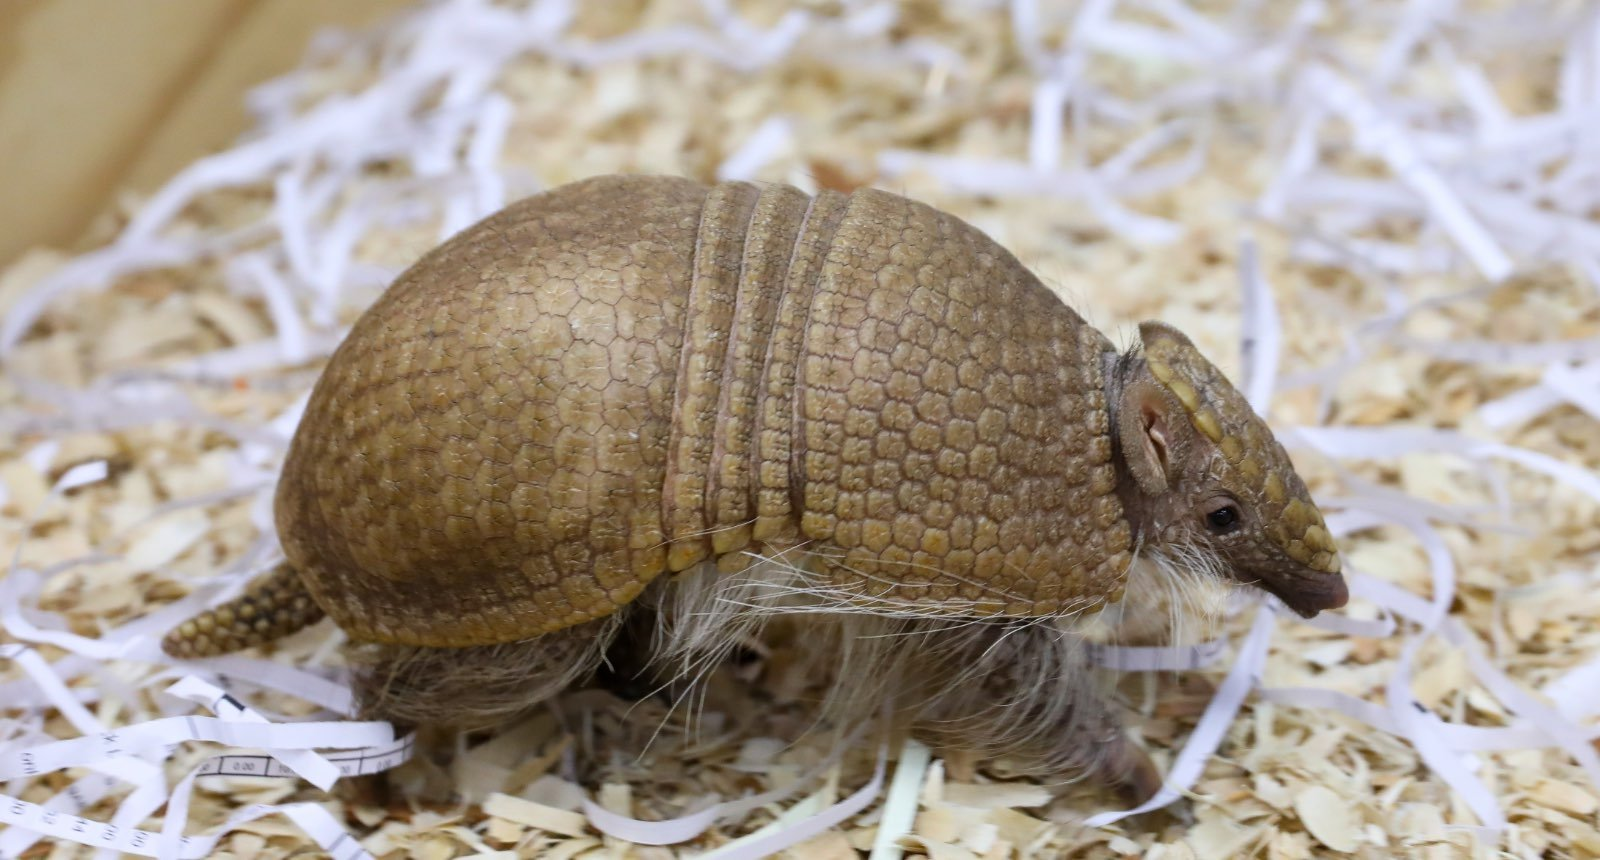 Southern three-banded armadillo - Tolypeutus matacas